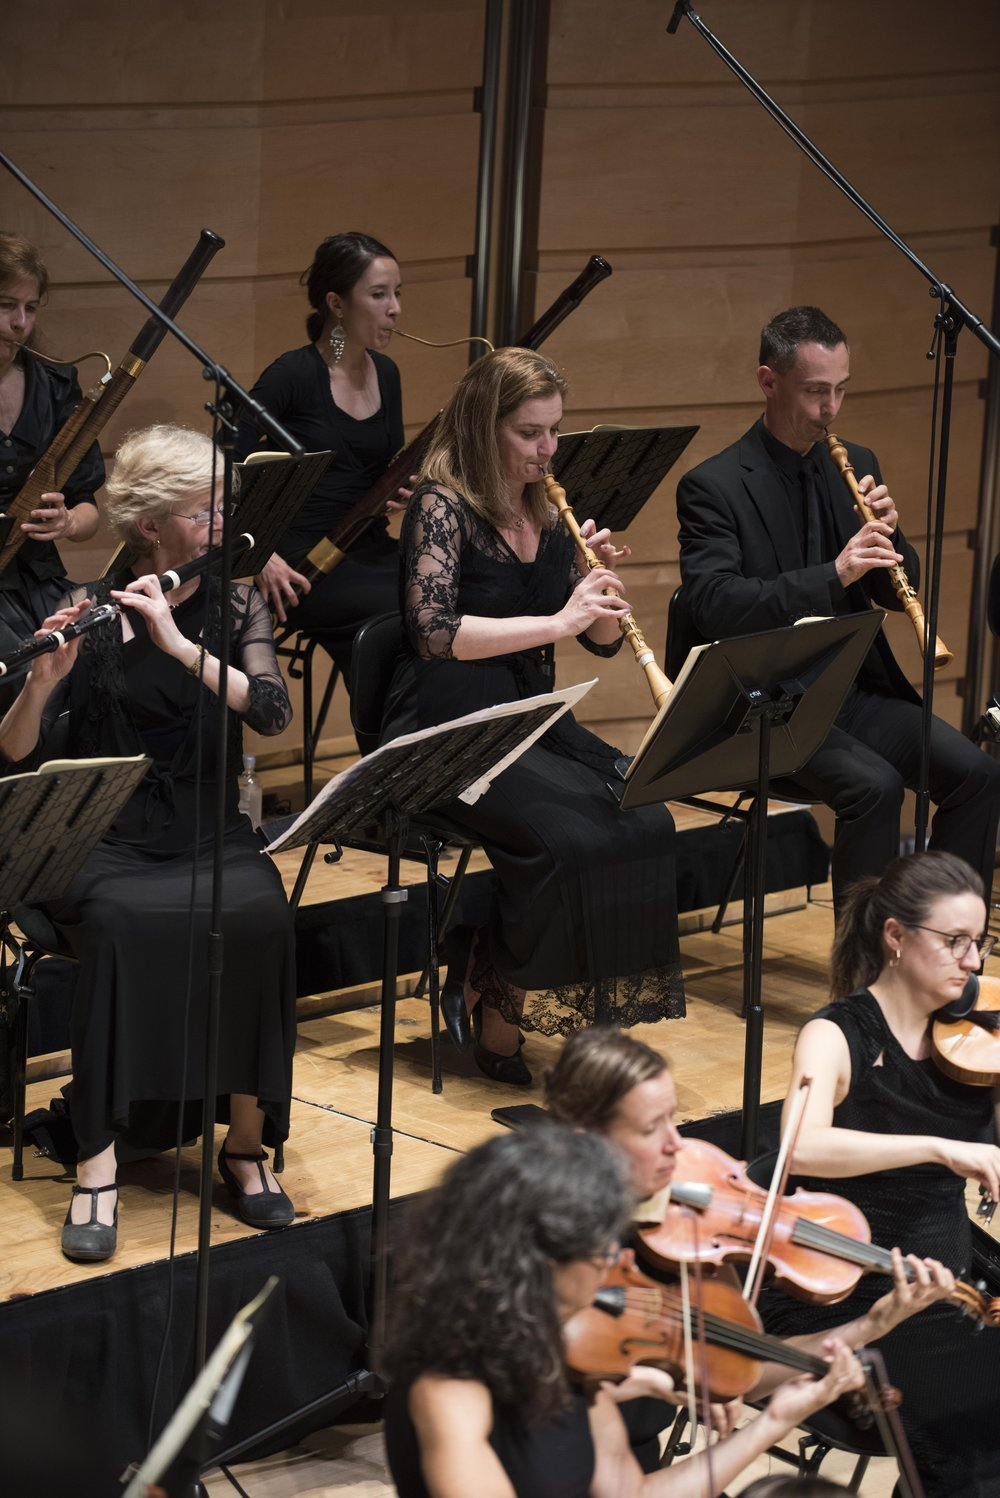 From left to right: Australian Principal Bassoon player Jane Gower from Copenhagen, Australian Principal Flute player Kate Clark from Amsterdam, Second Bassoon player Jackie Newcomb from Adelaide, Australian Principal Oboe player Emma Black from Vienna and Second Oboe player Ingo Muller from Freiburg